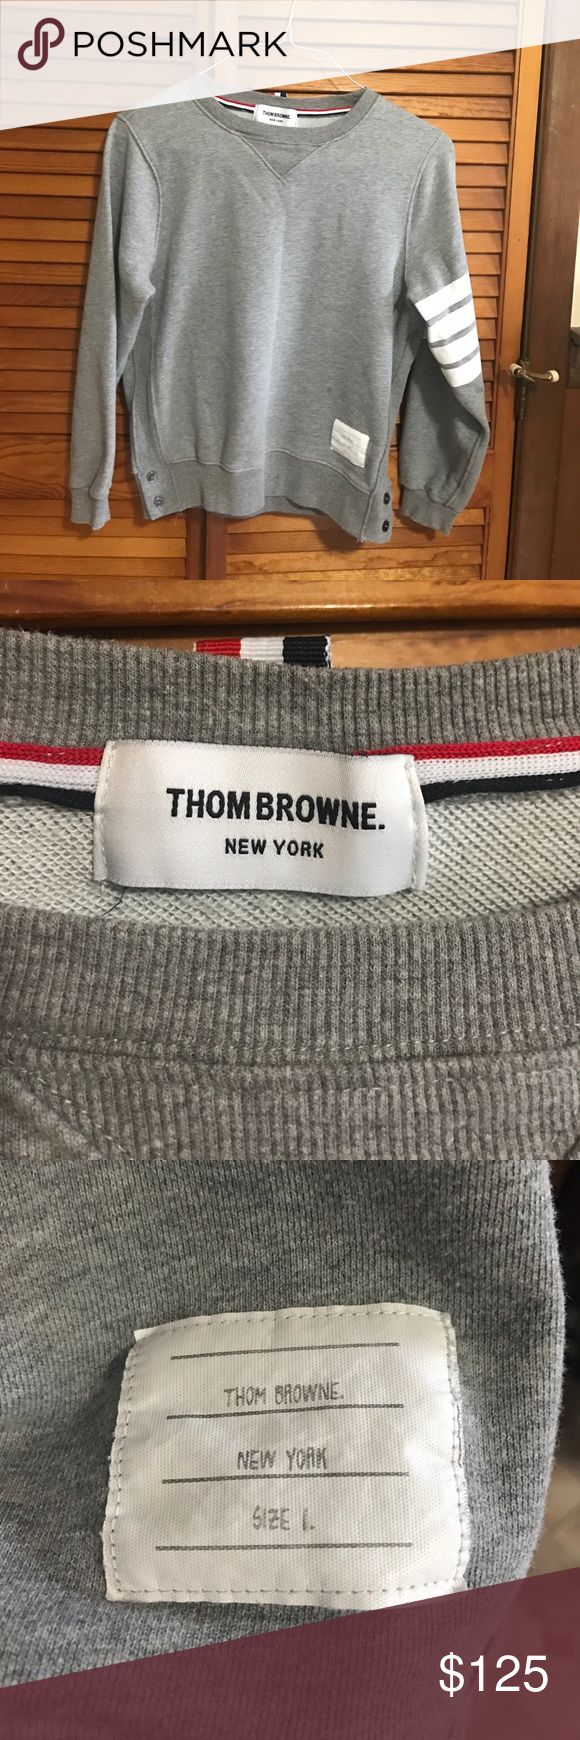 Thom Browne gray pullover sweatshirt size 1 Women's Thom Browne pull over sweatshirt size 1 (XS-S). Sweater is light gray in color with 2 striped sleeve. Sweater is in great used condition but does have a few faint light spots that almost blend into the sweater (almost like a detergent grease stain). No rips/holes. Thom Browne Sweaters Crew & Scoop Necks